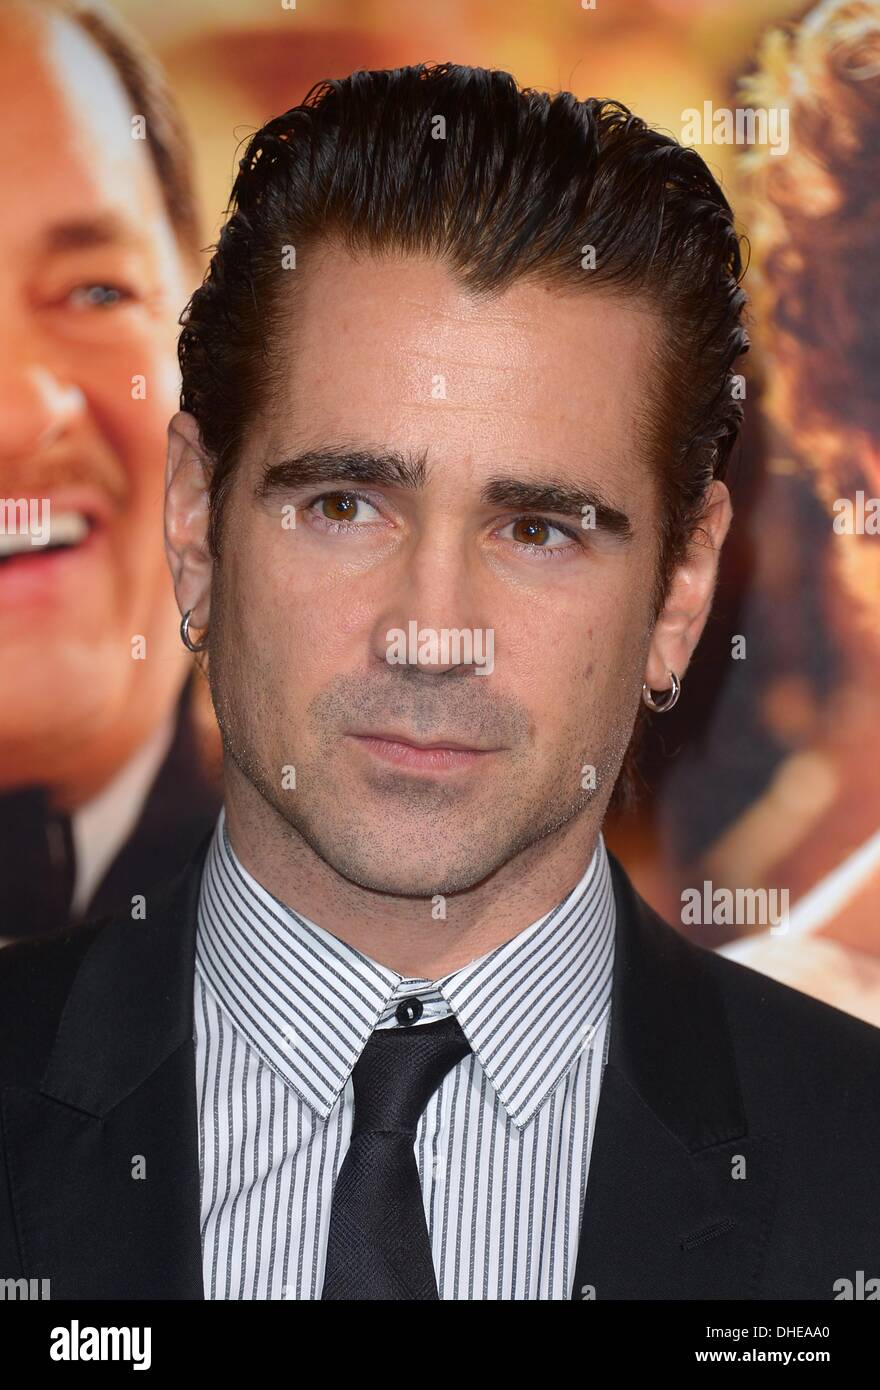 Los Angeles, USA. 7th November 2013. Colin Farrell at the film premiere for Saving Mr Banks at the TCL Chinese Theatre in Hollywood, CA Credit:  Sydney Alford/Alamy Live News - Stock Image